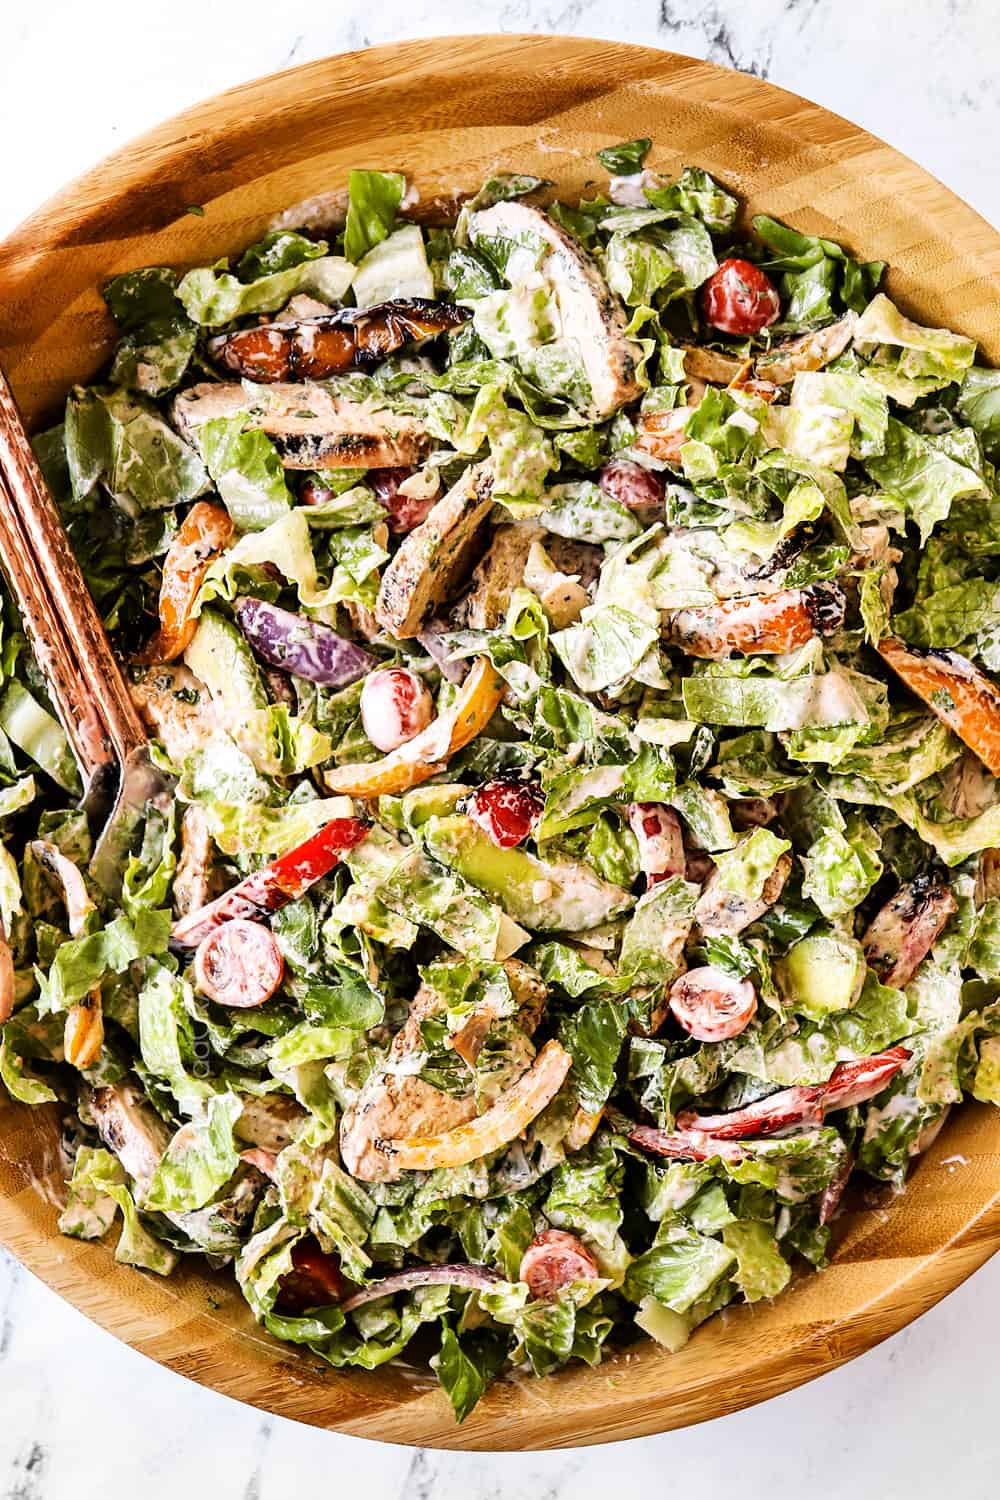 showing how to make chicken fajita salad by tossing with creamy dressing